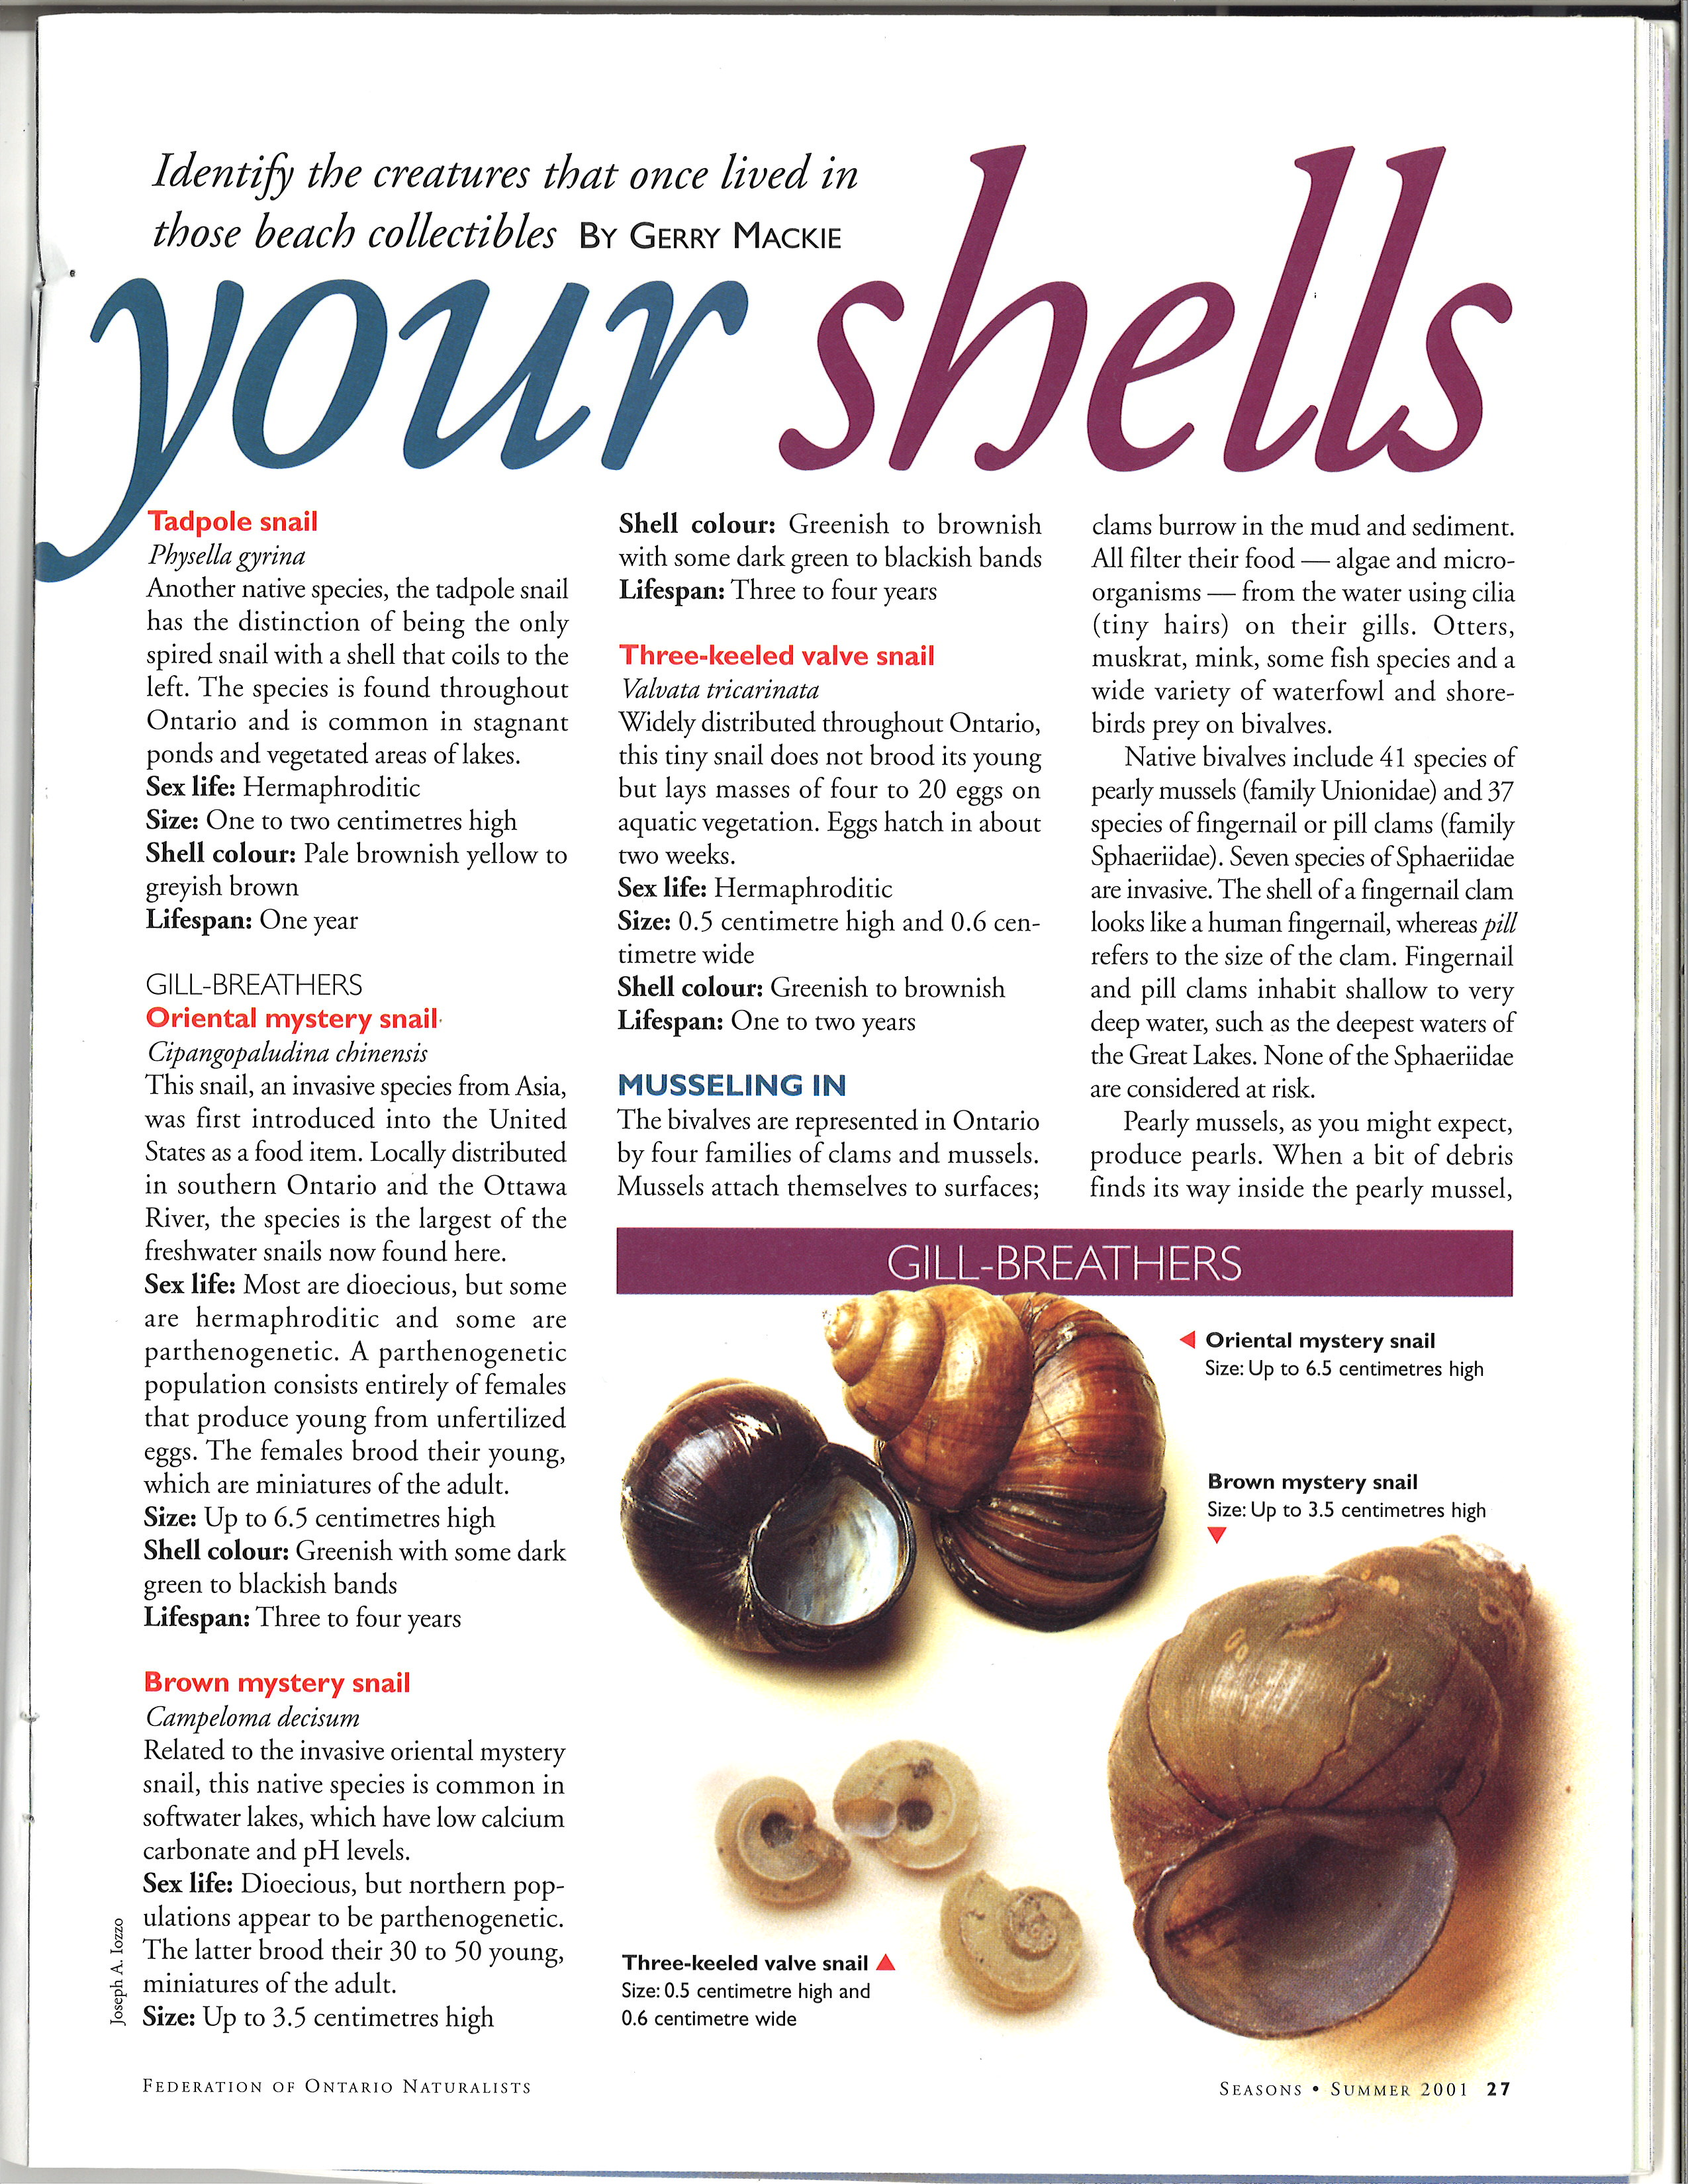 p27_know_your_shells_seasons_summer_2001-21